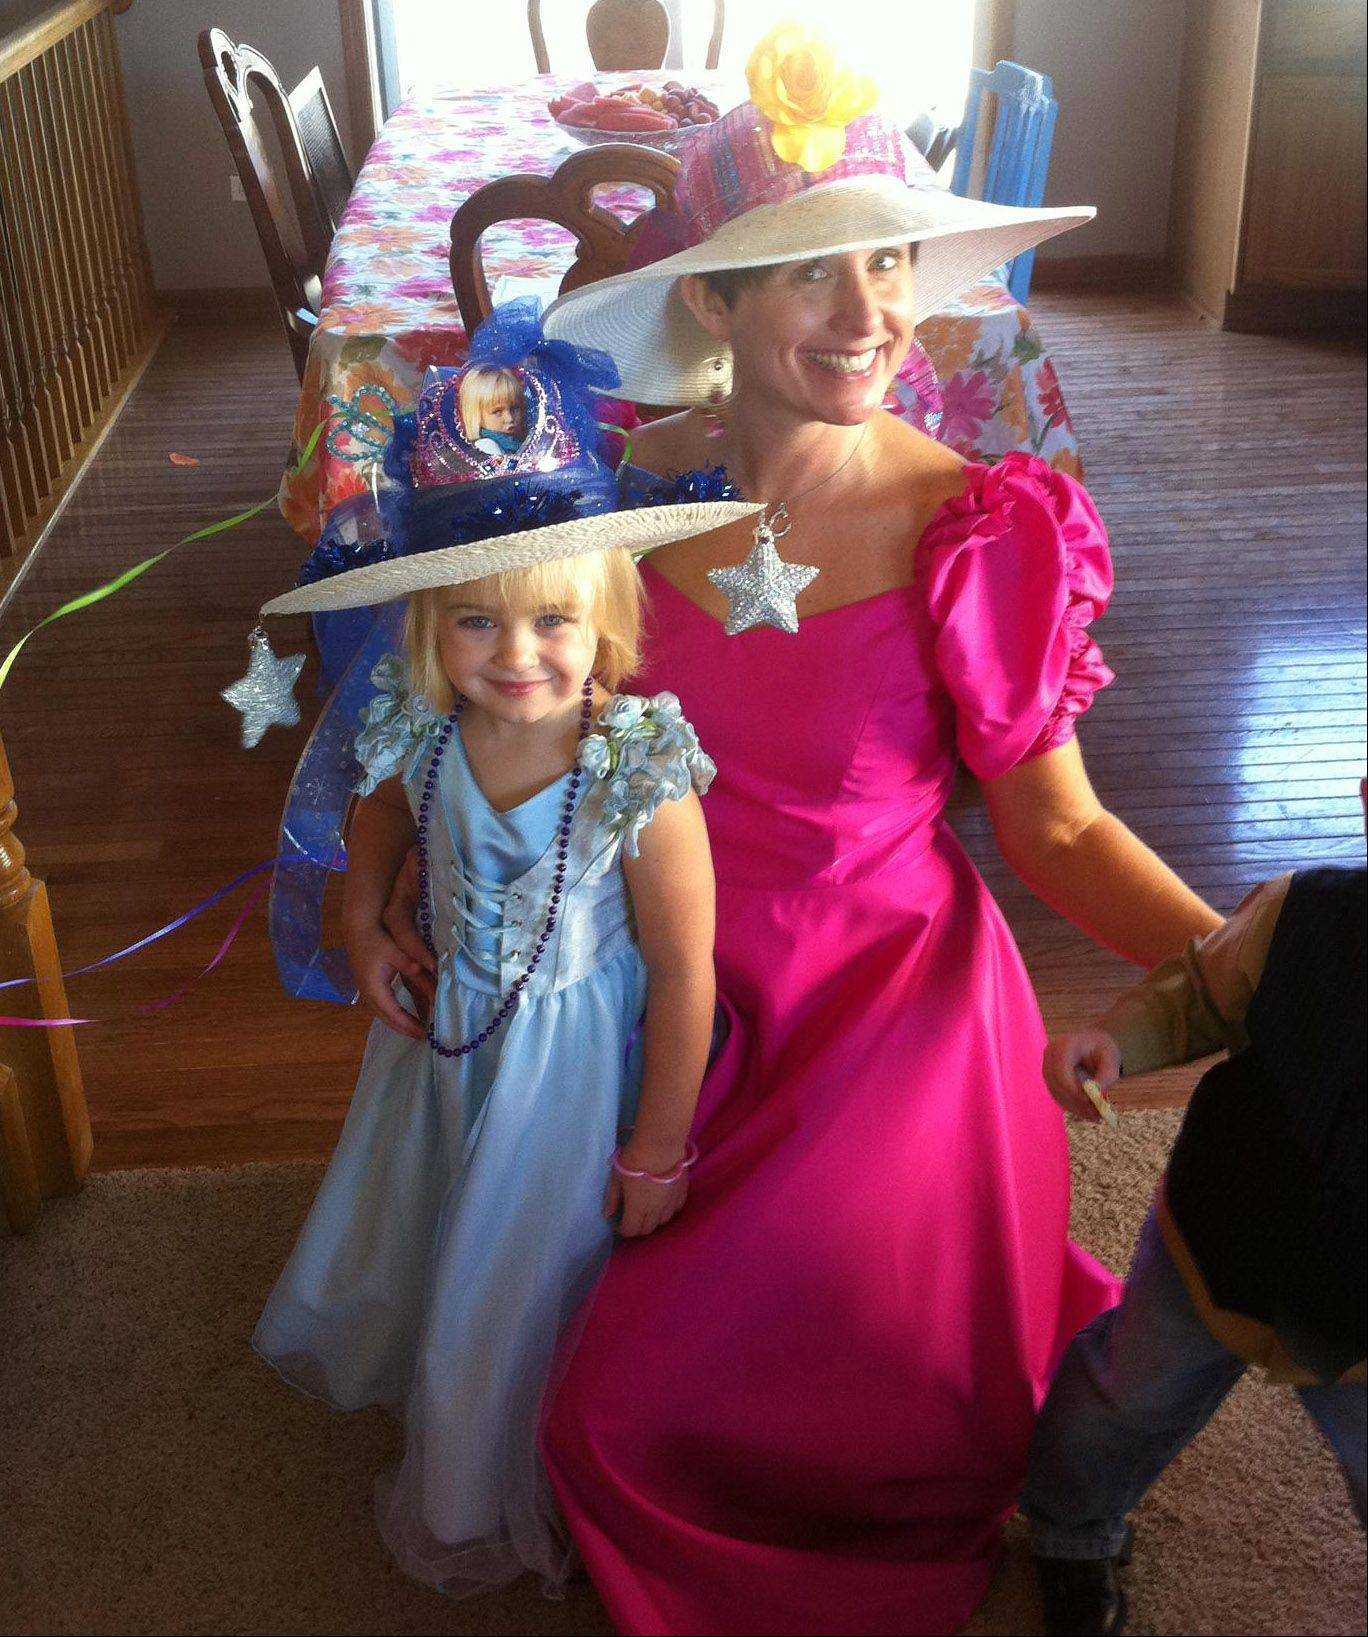 Claire Haran�s birthday falls near Christmas, so her mom, Cynthia, tries to do something special for the young girl every year. They had a tea-party-themed bash when she turned 4.